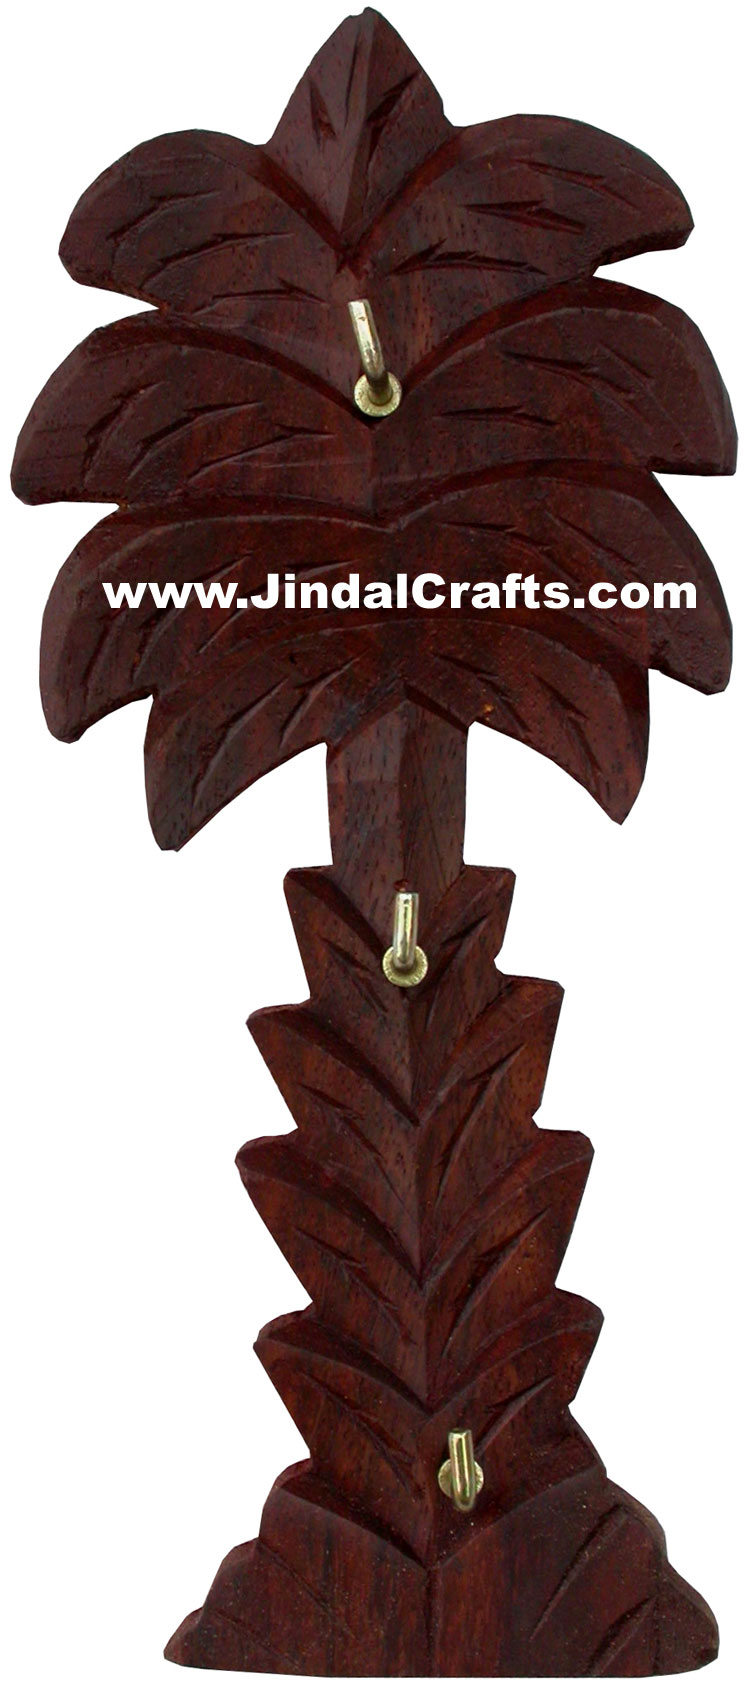 Handcarved Wooden Brass Inlay Key Holder Home Decor